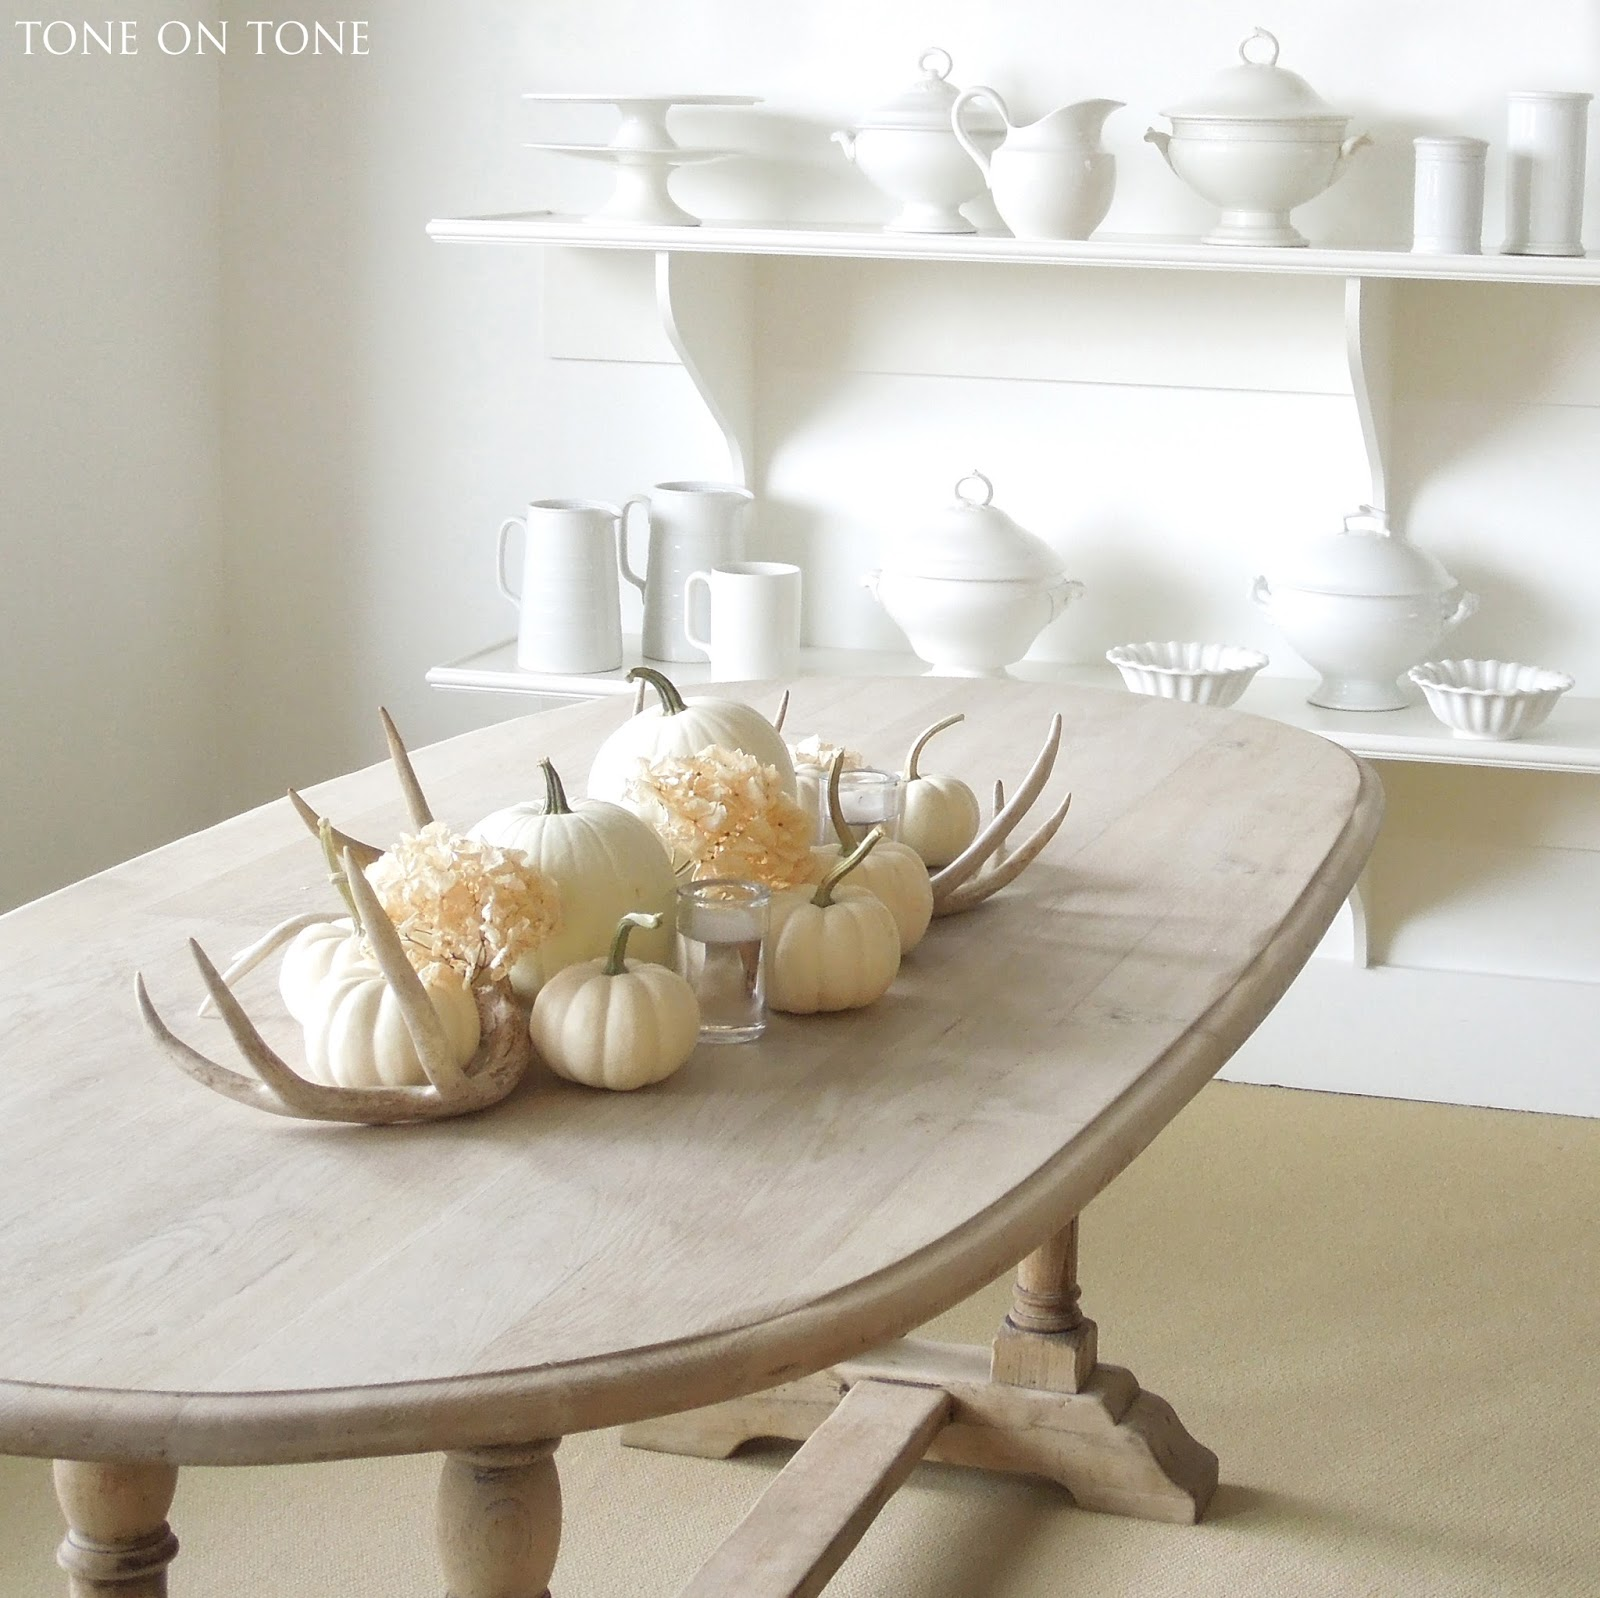 White pumpkins, antlers, and ironstone on shelves